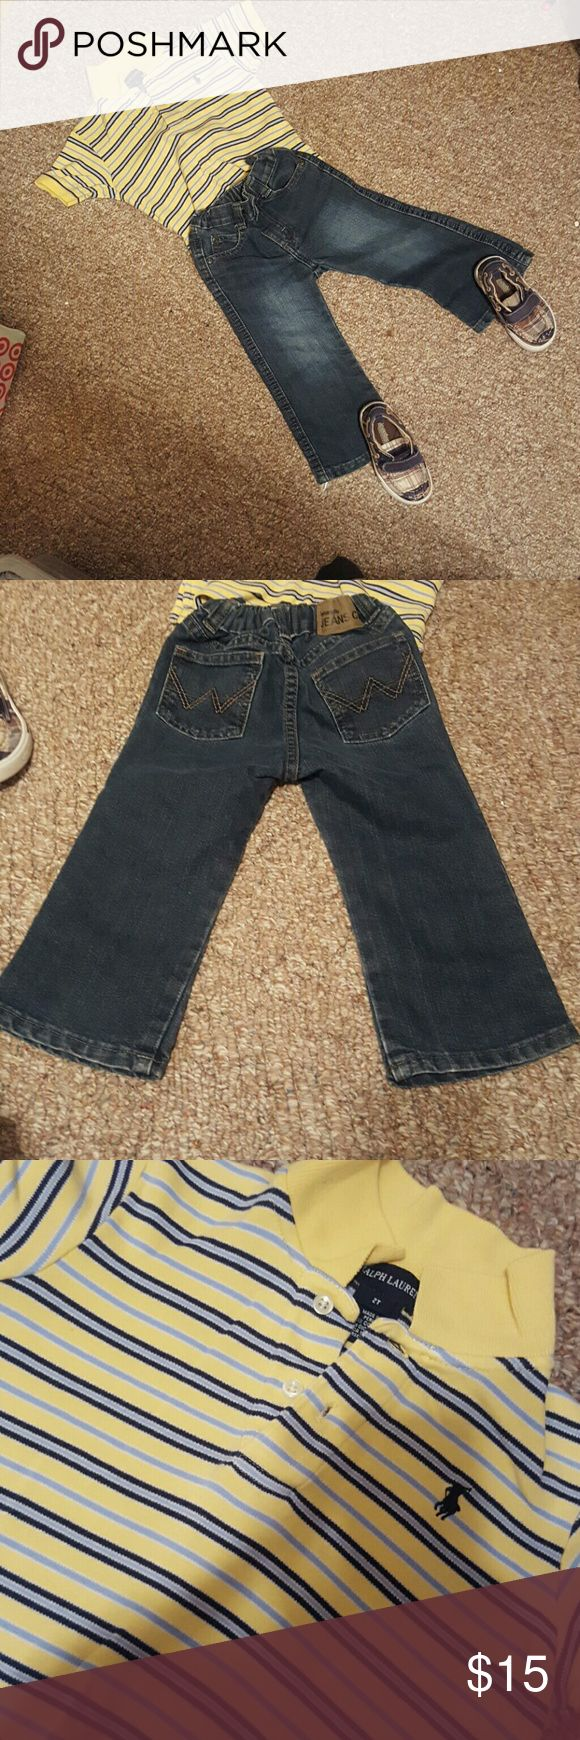 2t boy bundle Classics by buster brown shoes sz 7. Signs of wear but still in veey good shape Ralph lauren yellow, navy blue, dark blue and white striped top, 3 buttons, collar 2t Wrangler jeans 2t Matching Sets